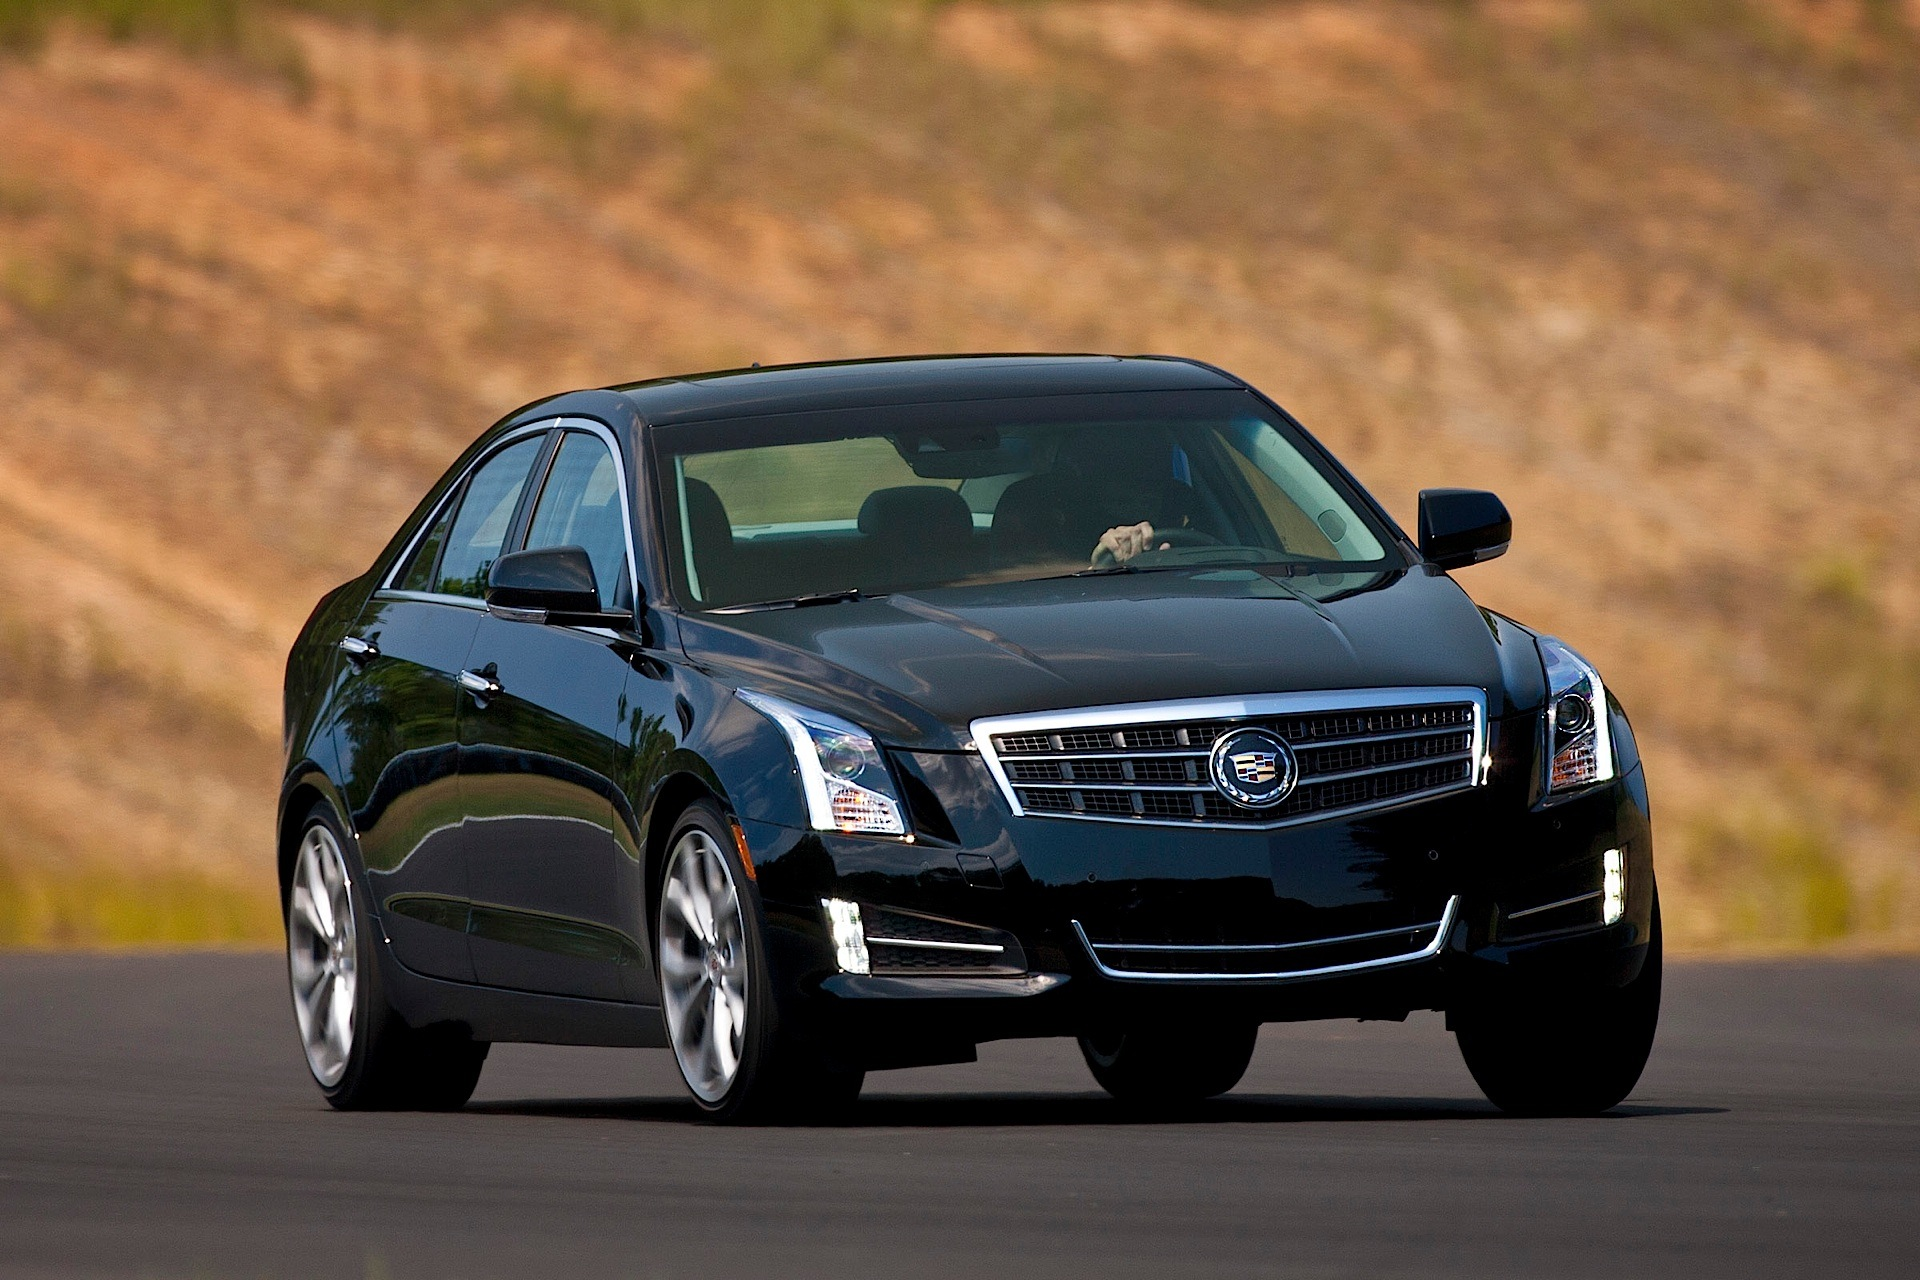 Best Awd Sports Cars >> CADILLAC ATS specs - 2012, 2013, 2014, 2015, 2016, 2017 ...